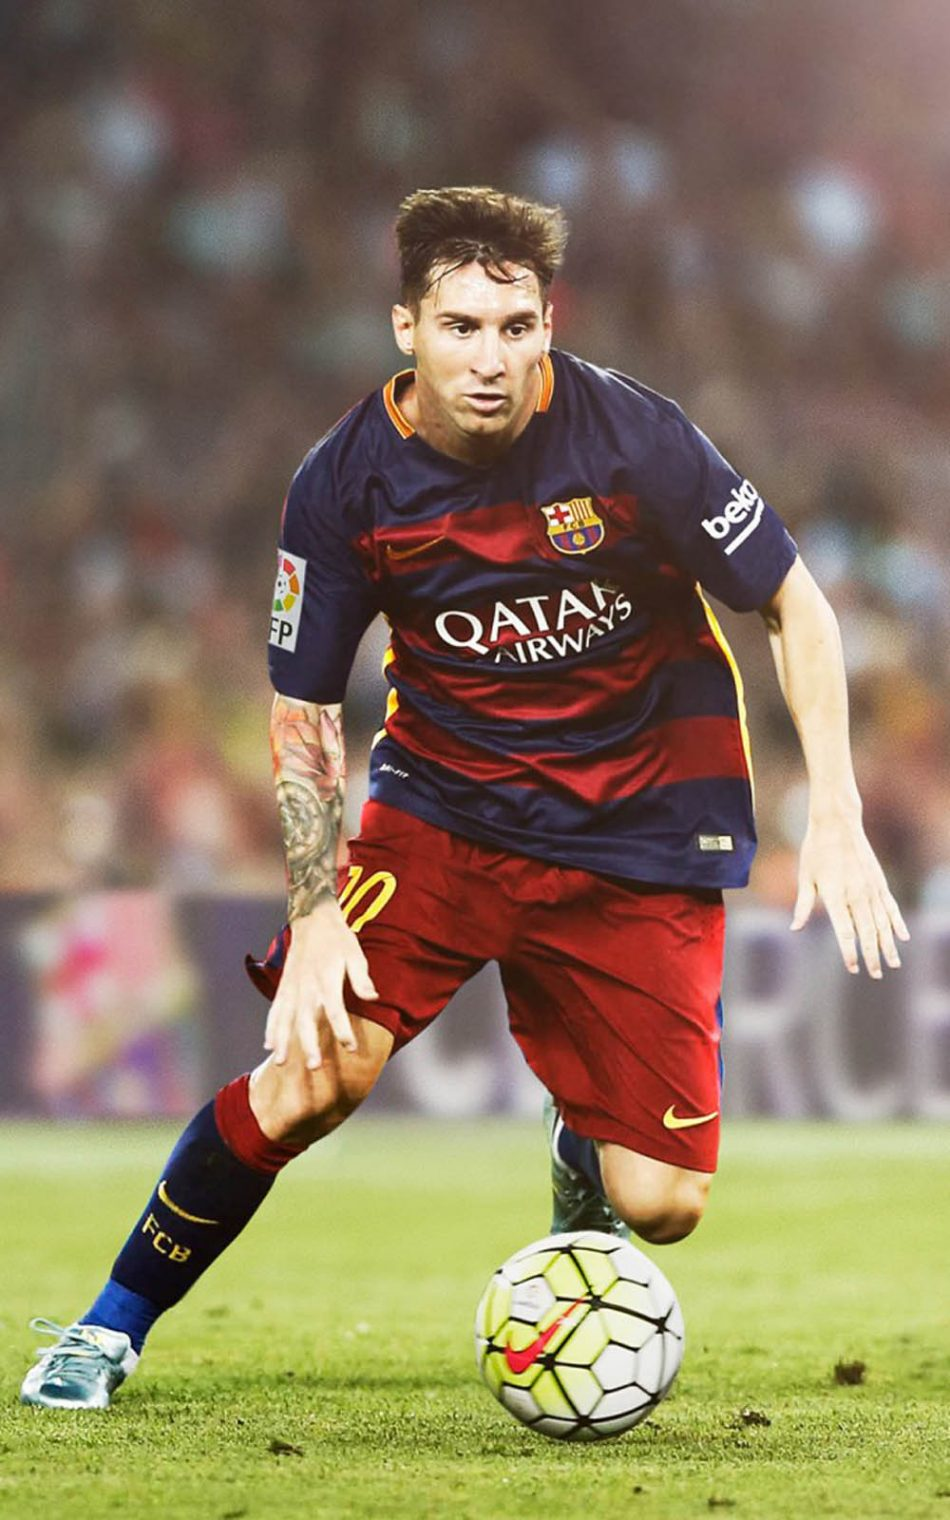 Lionel messi playing for fc barcelona download free 100 - Mobles vintage barcelona ...